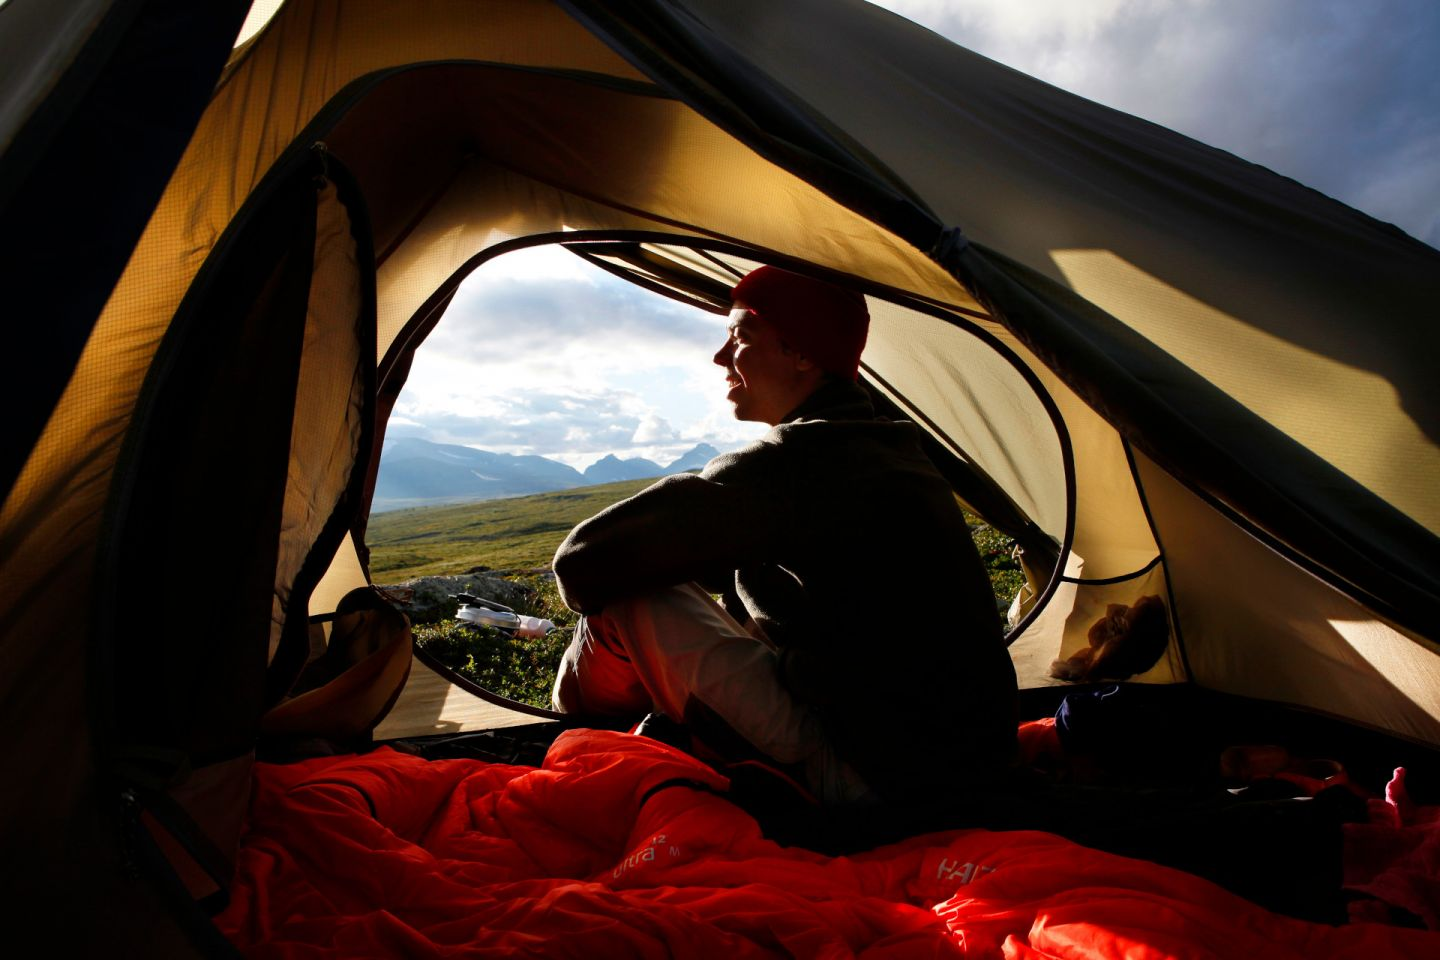 Camping in a tent in Finnish Lapland